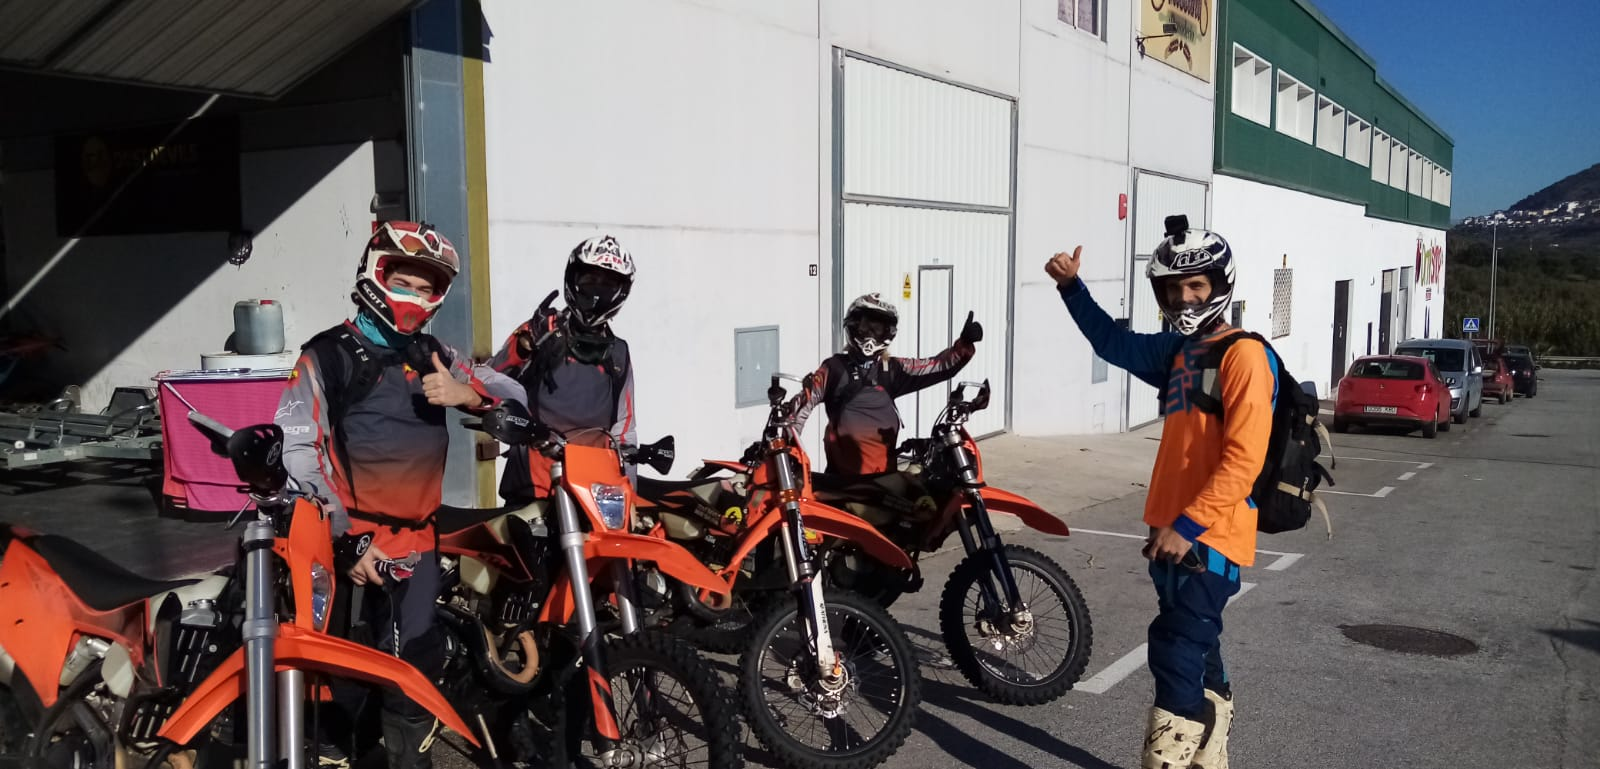 4 motorbike riders with thumbs up